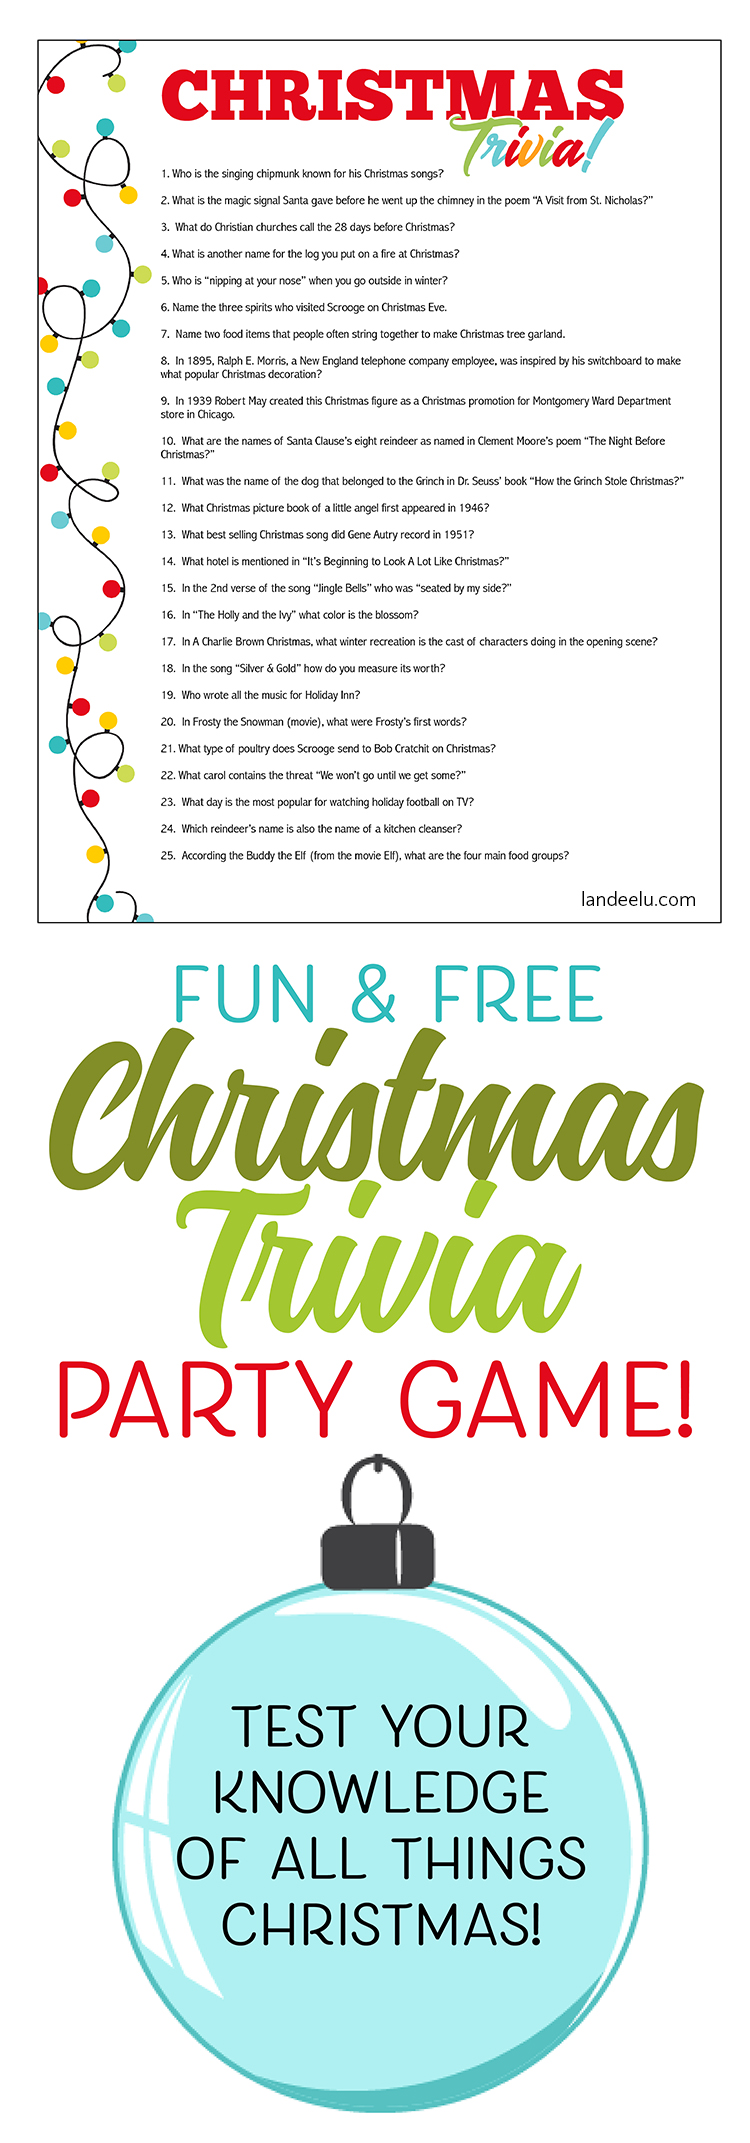 picture about Christmas Trivia Game Printable named Xmas Trivia Video game Fantastic for Xmas Events